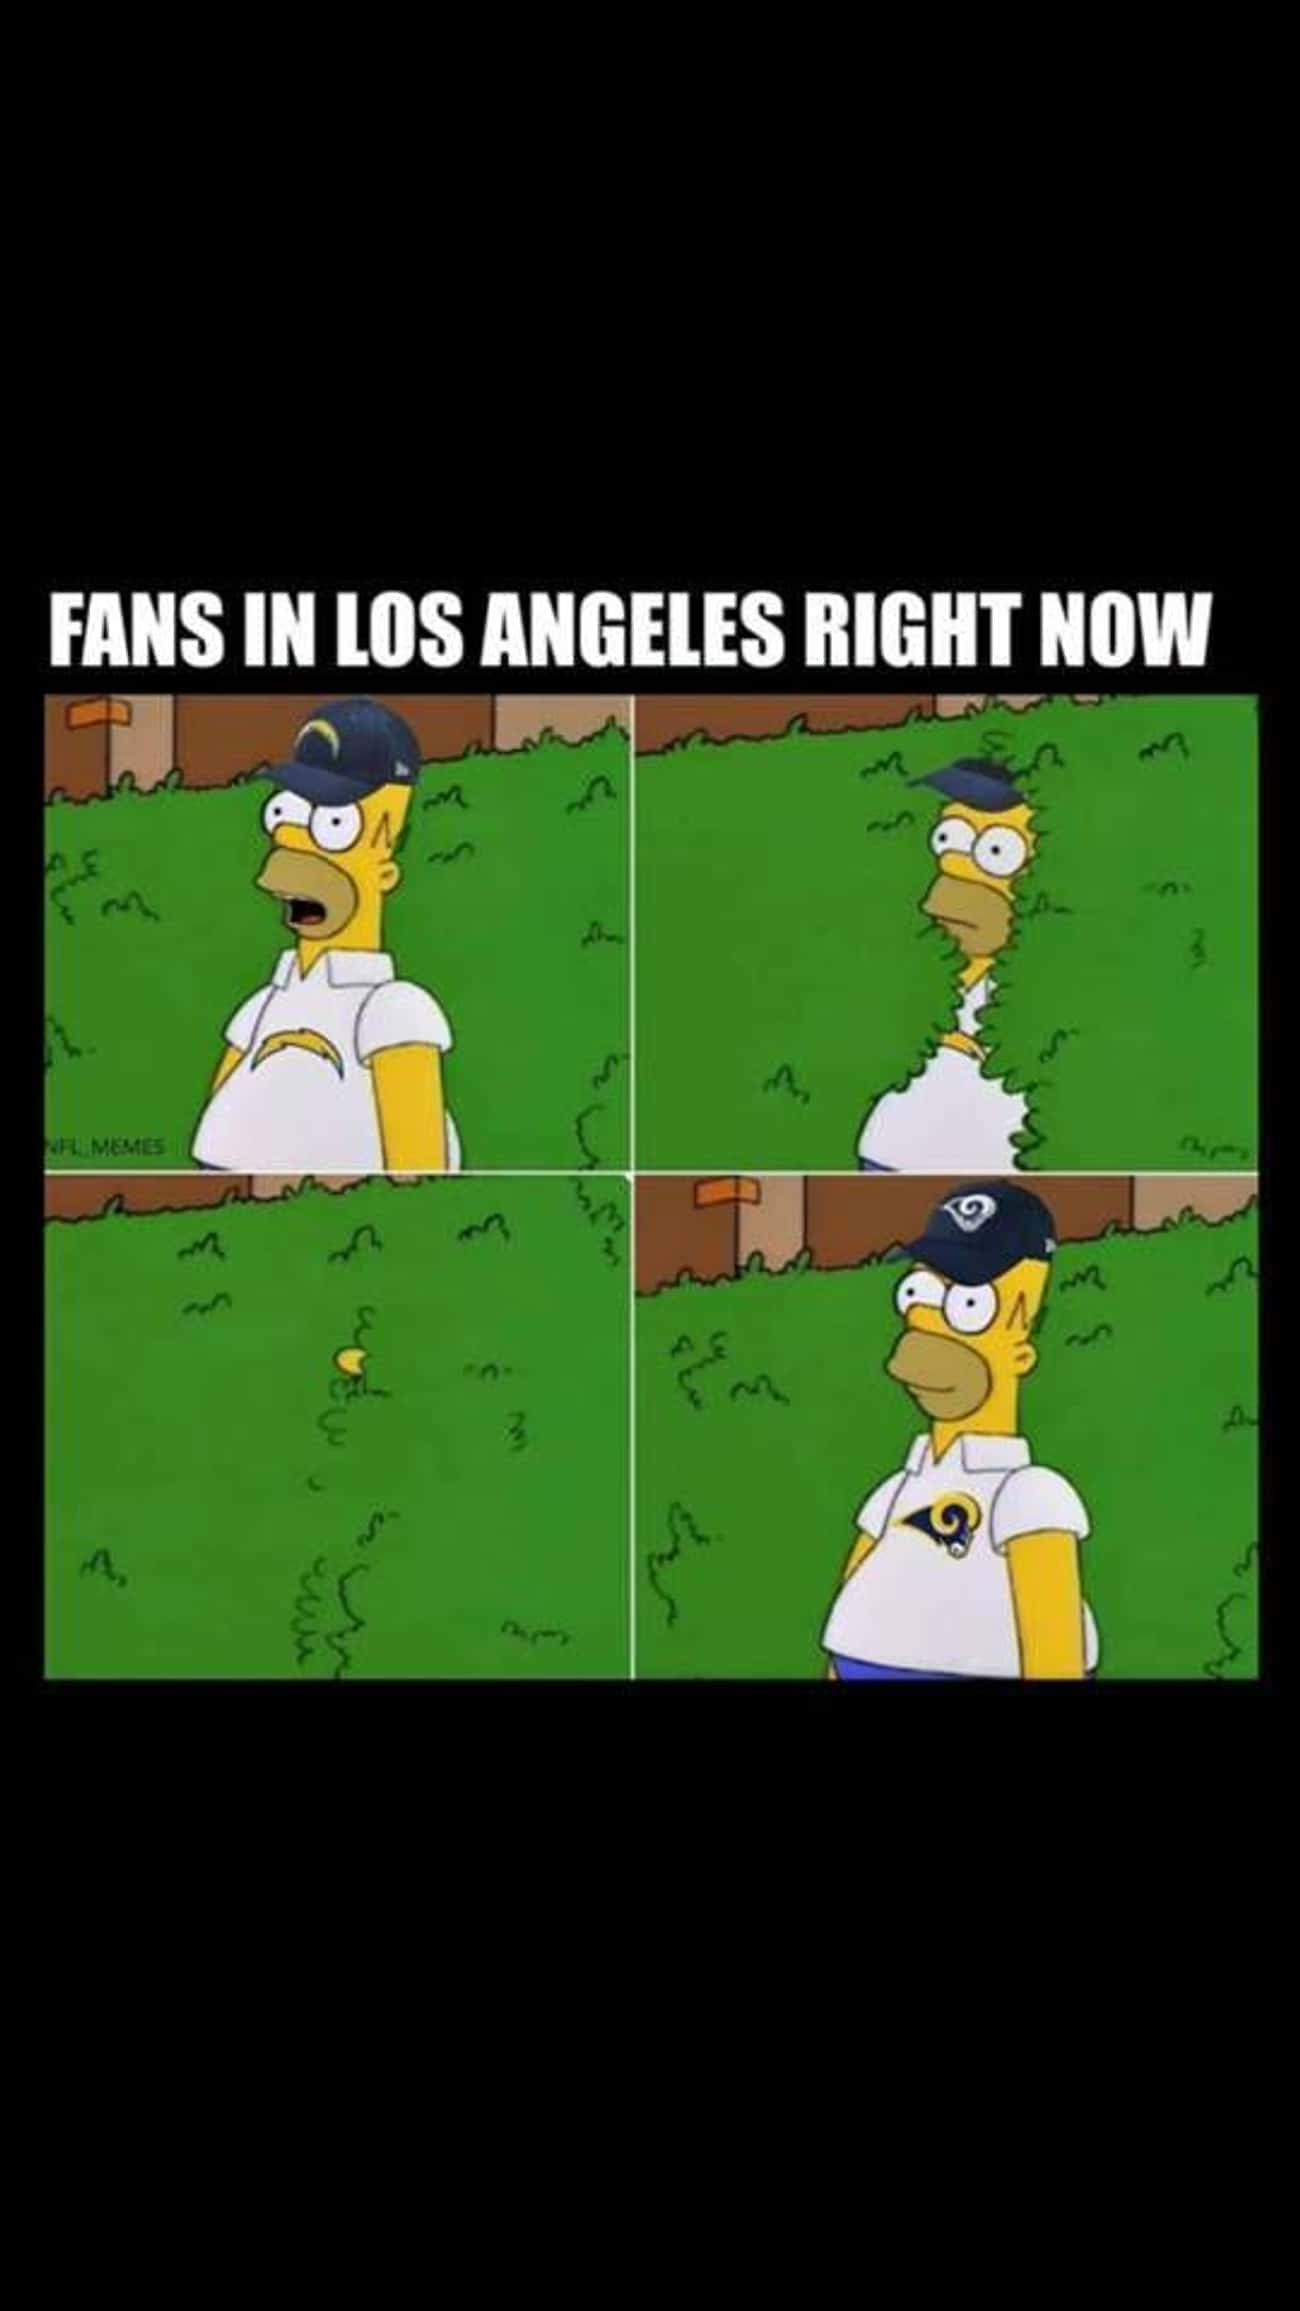 Bunch of Band Wagon Fans